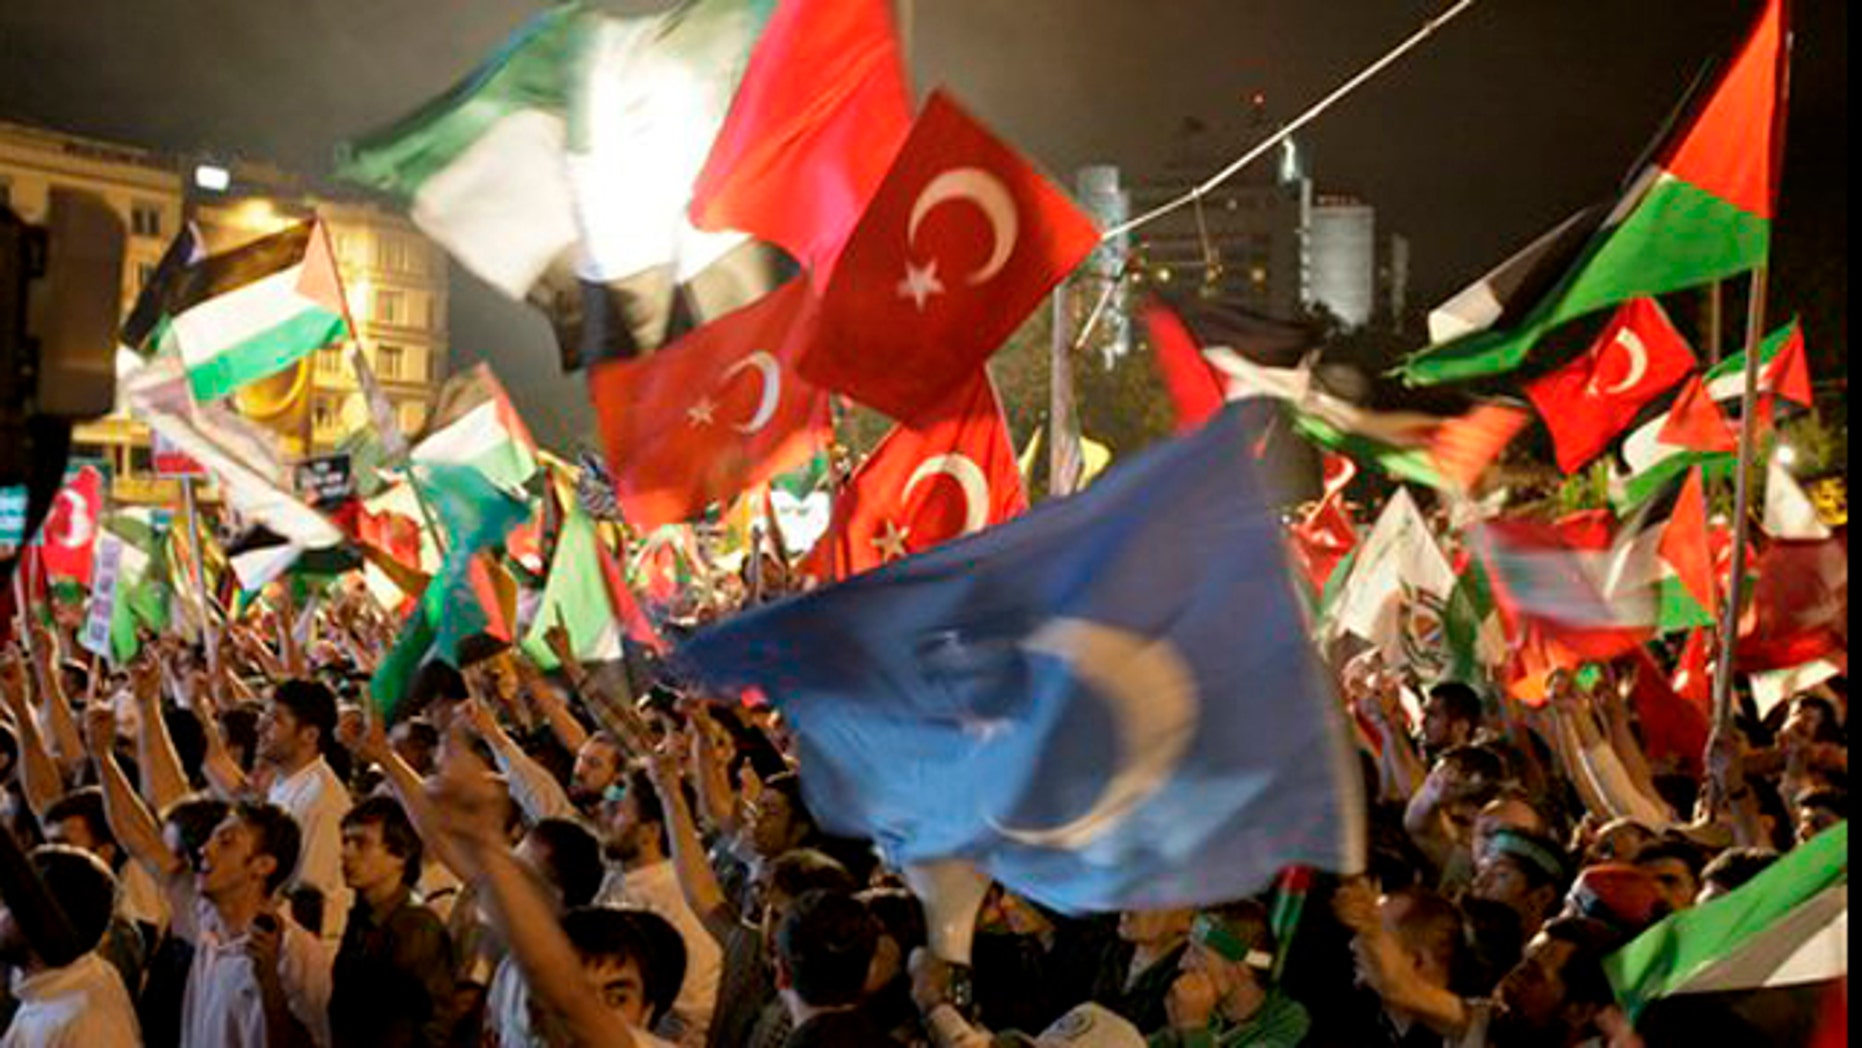 June 2, 2010: Demonstrators chant slogans waving Palestinian and Turkish flags during a protest against Israel, in Istanbul, Turkey.